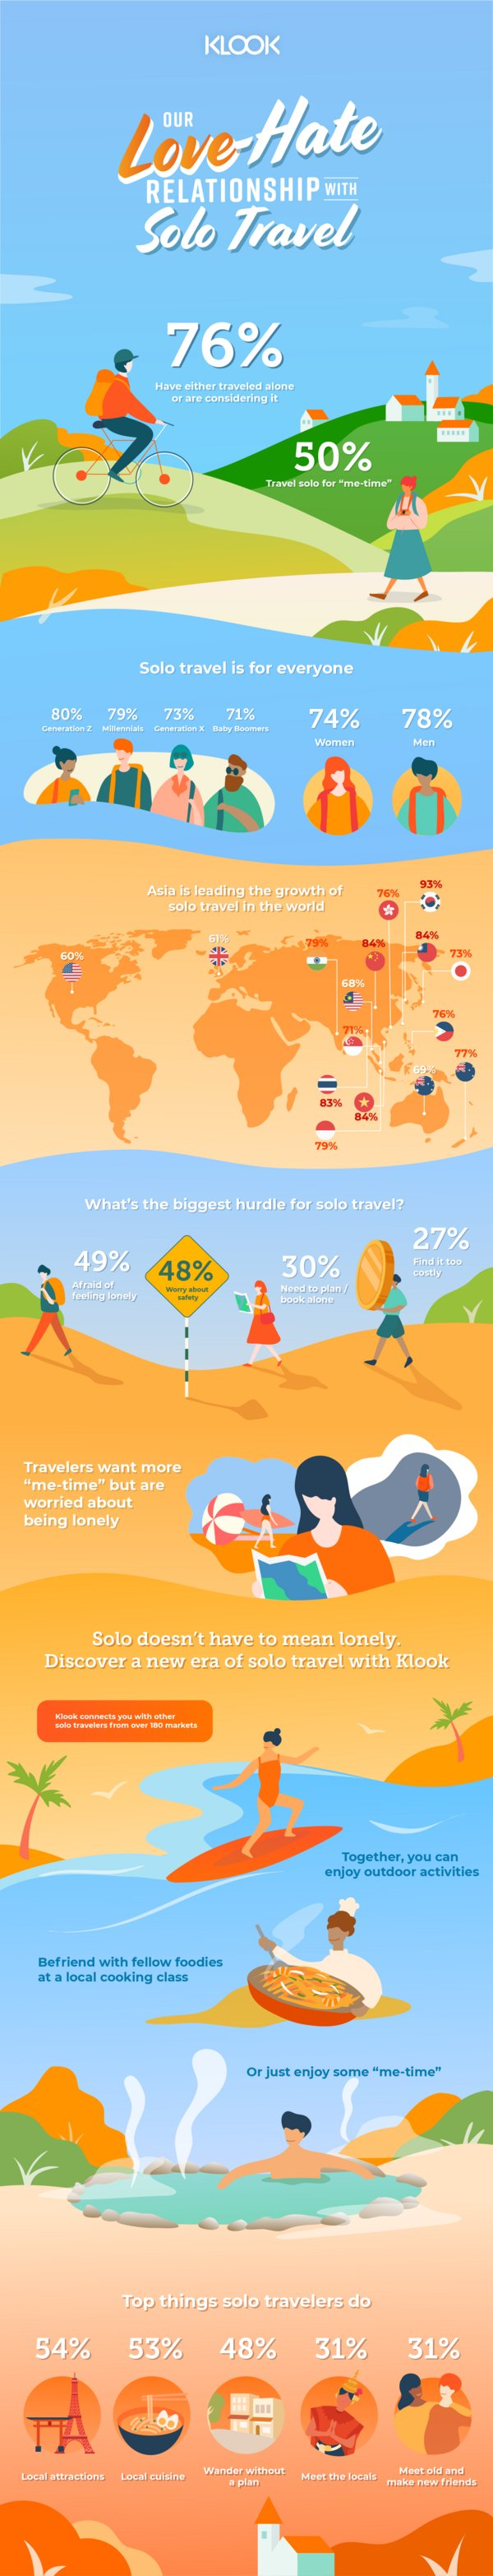 Unpacking Solo Travel: Klook's global survey uncovers Indians' love-hate relationship with solo travel